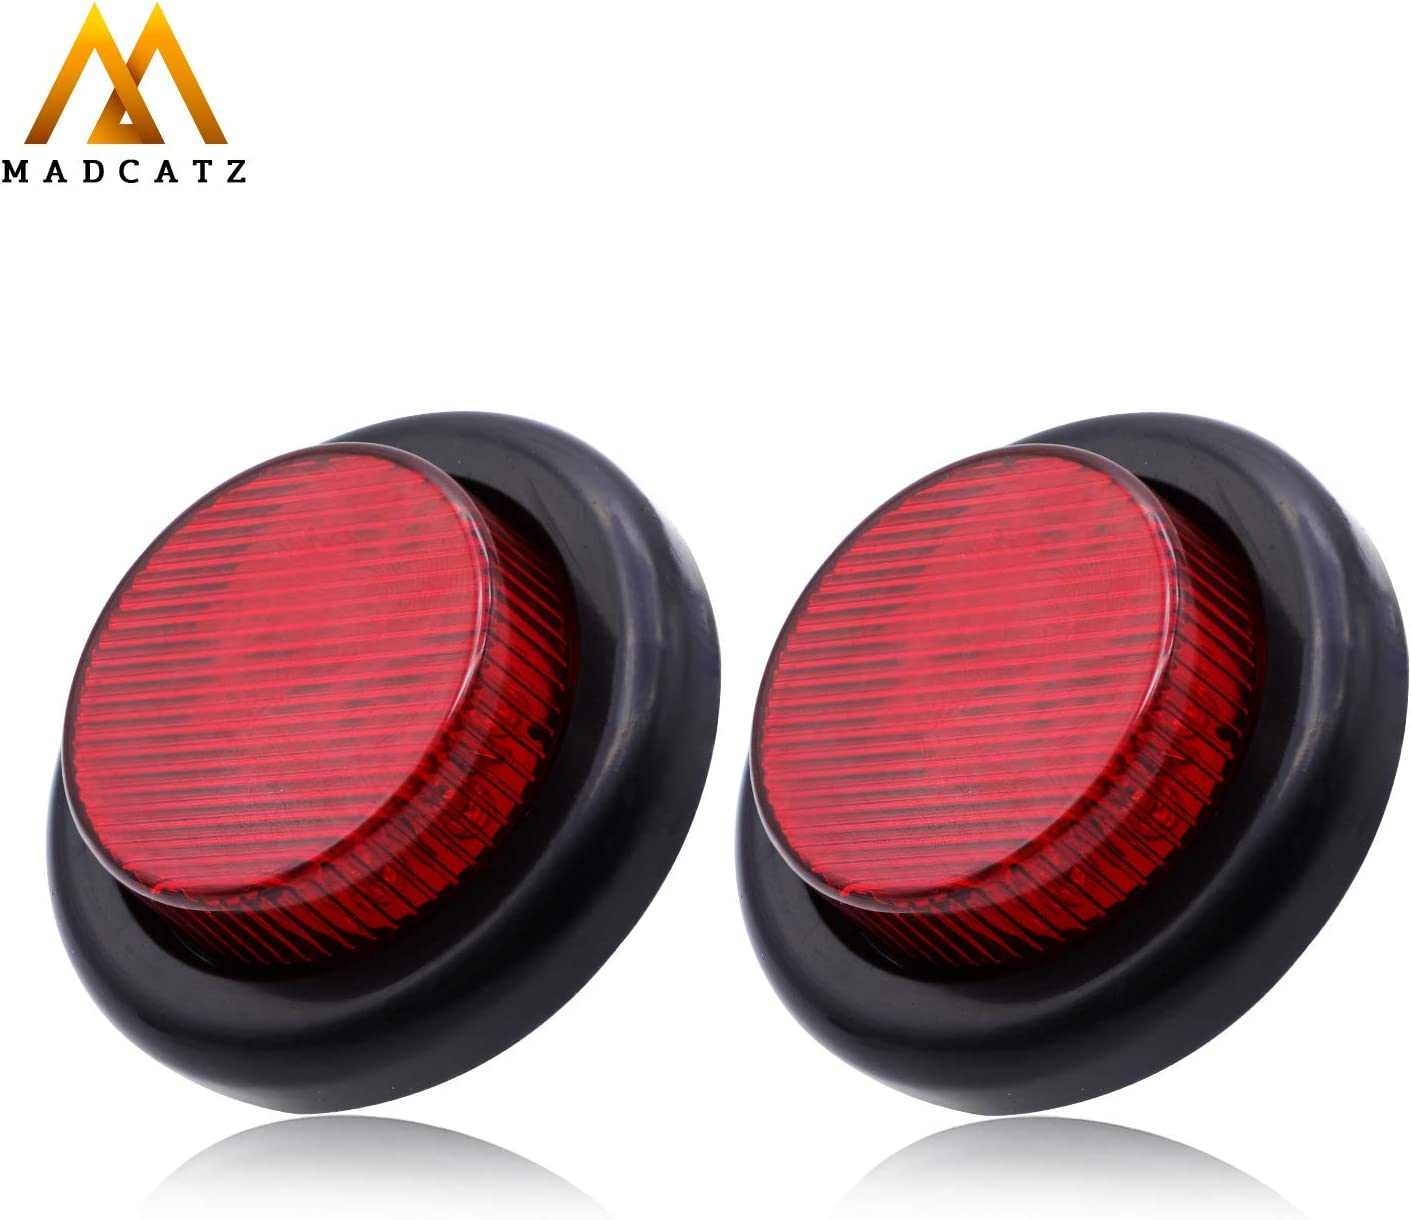 Pack of 2 MadCatz Inch Elegant Round Max 72% OFF Lights TPE Side Marker with Red